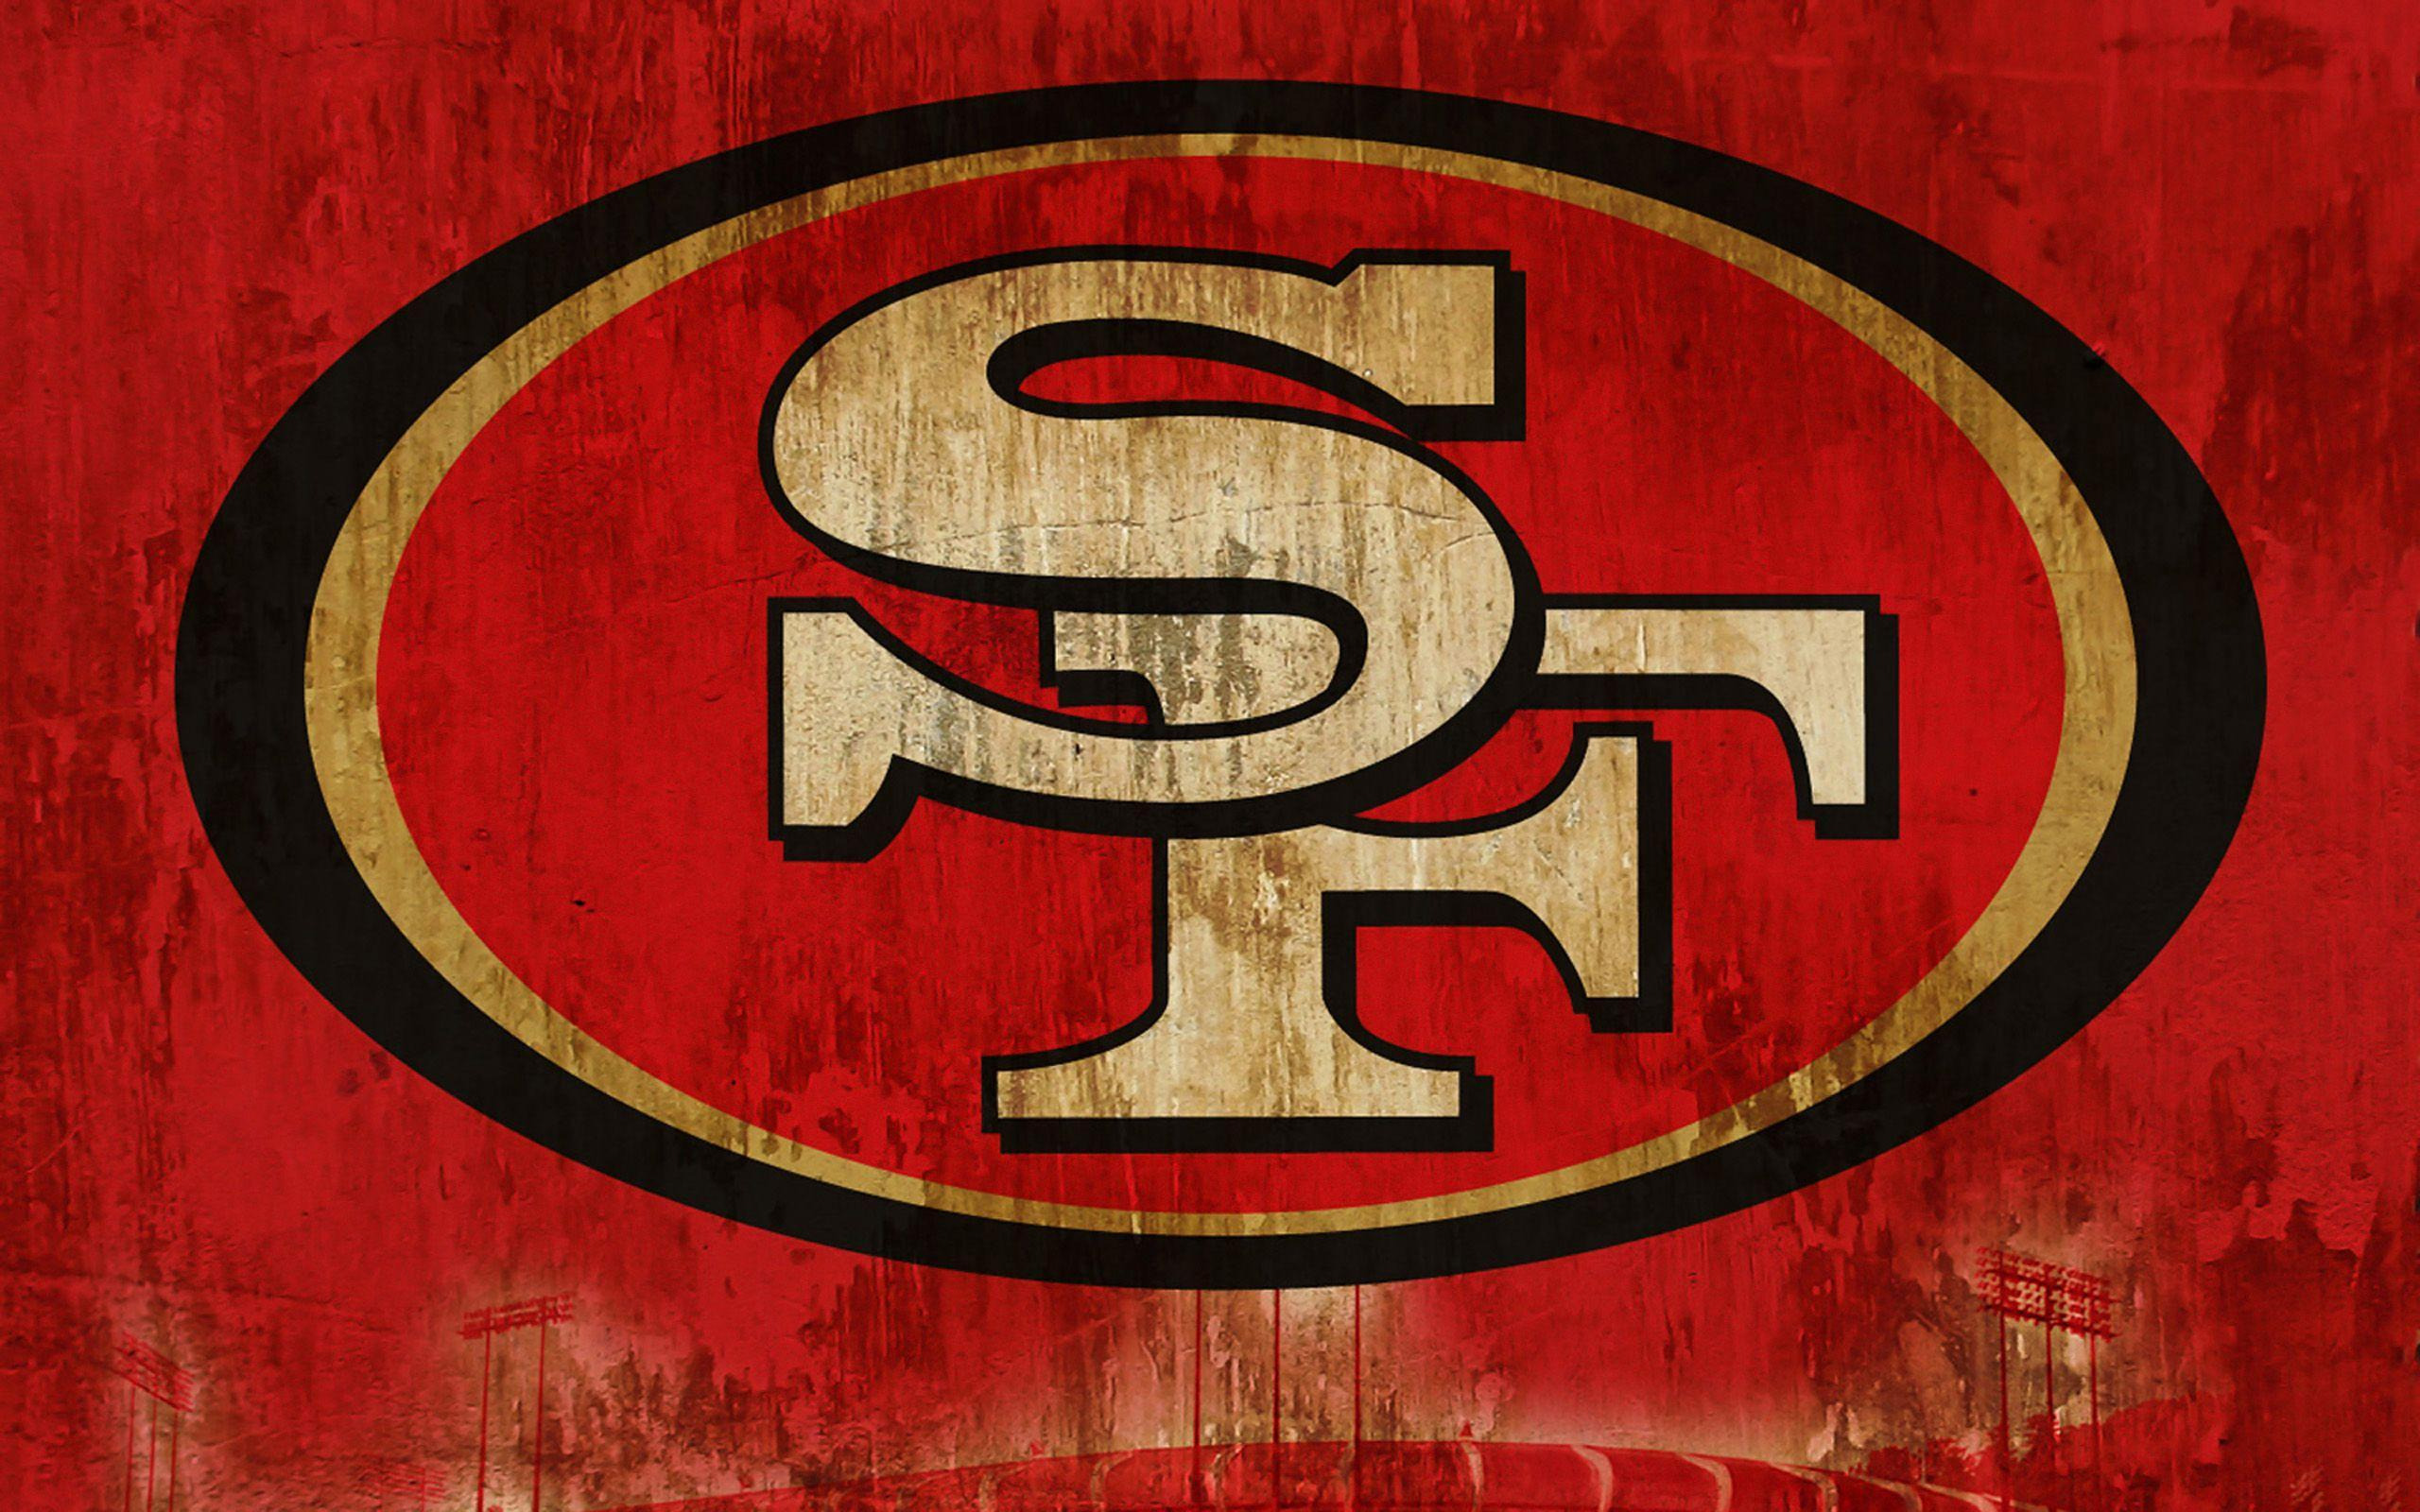 9 San Francisco 49ers HD Wallpapers | Backgrounds - Wallpaper Abyss